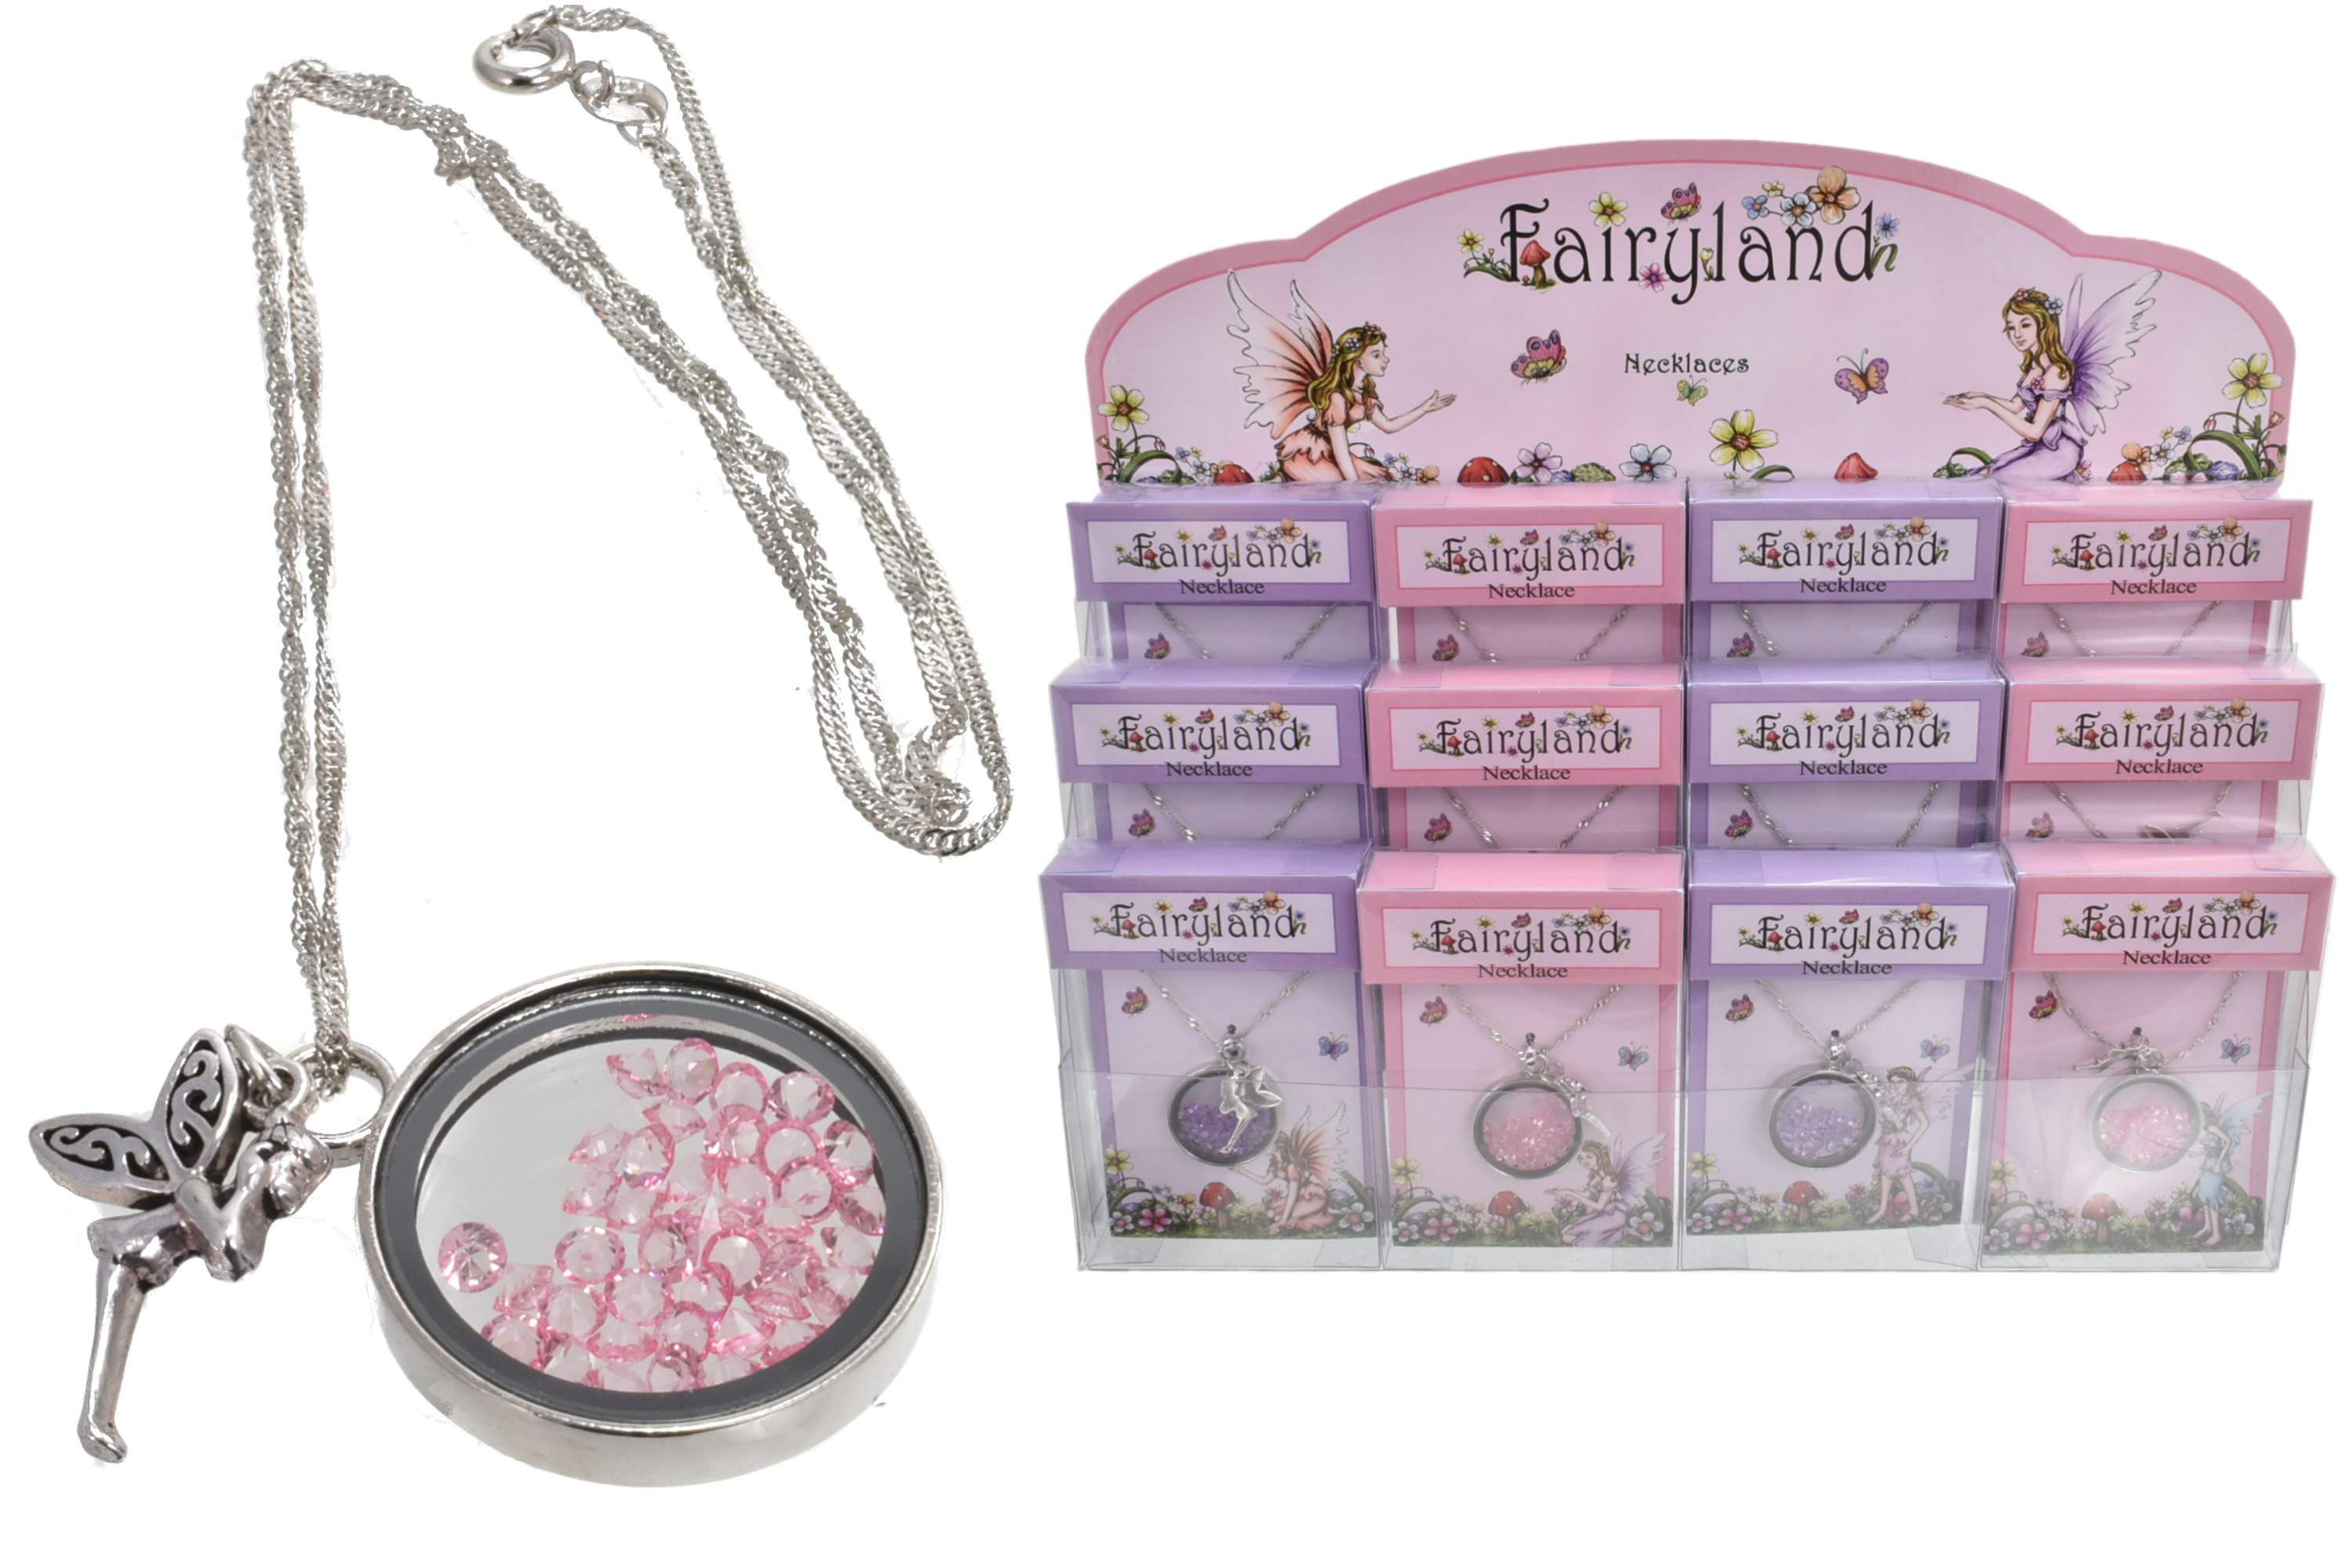 Fairyland Crystal Necklace In Acetate Box In Display Bx